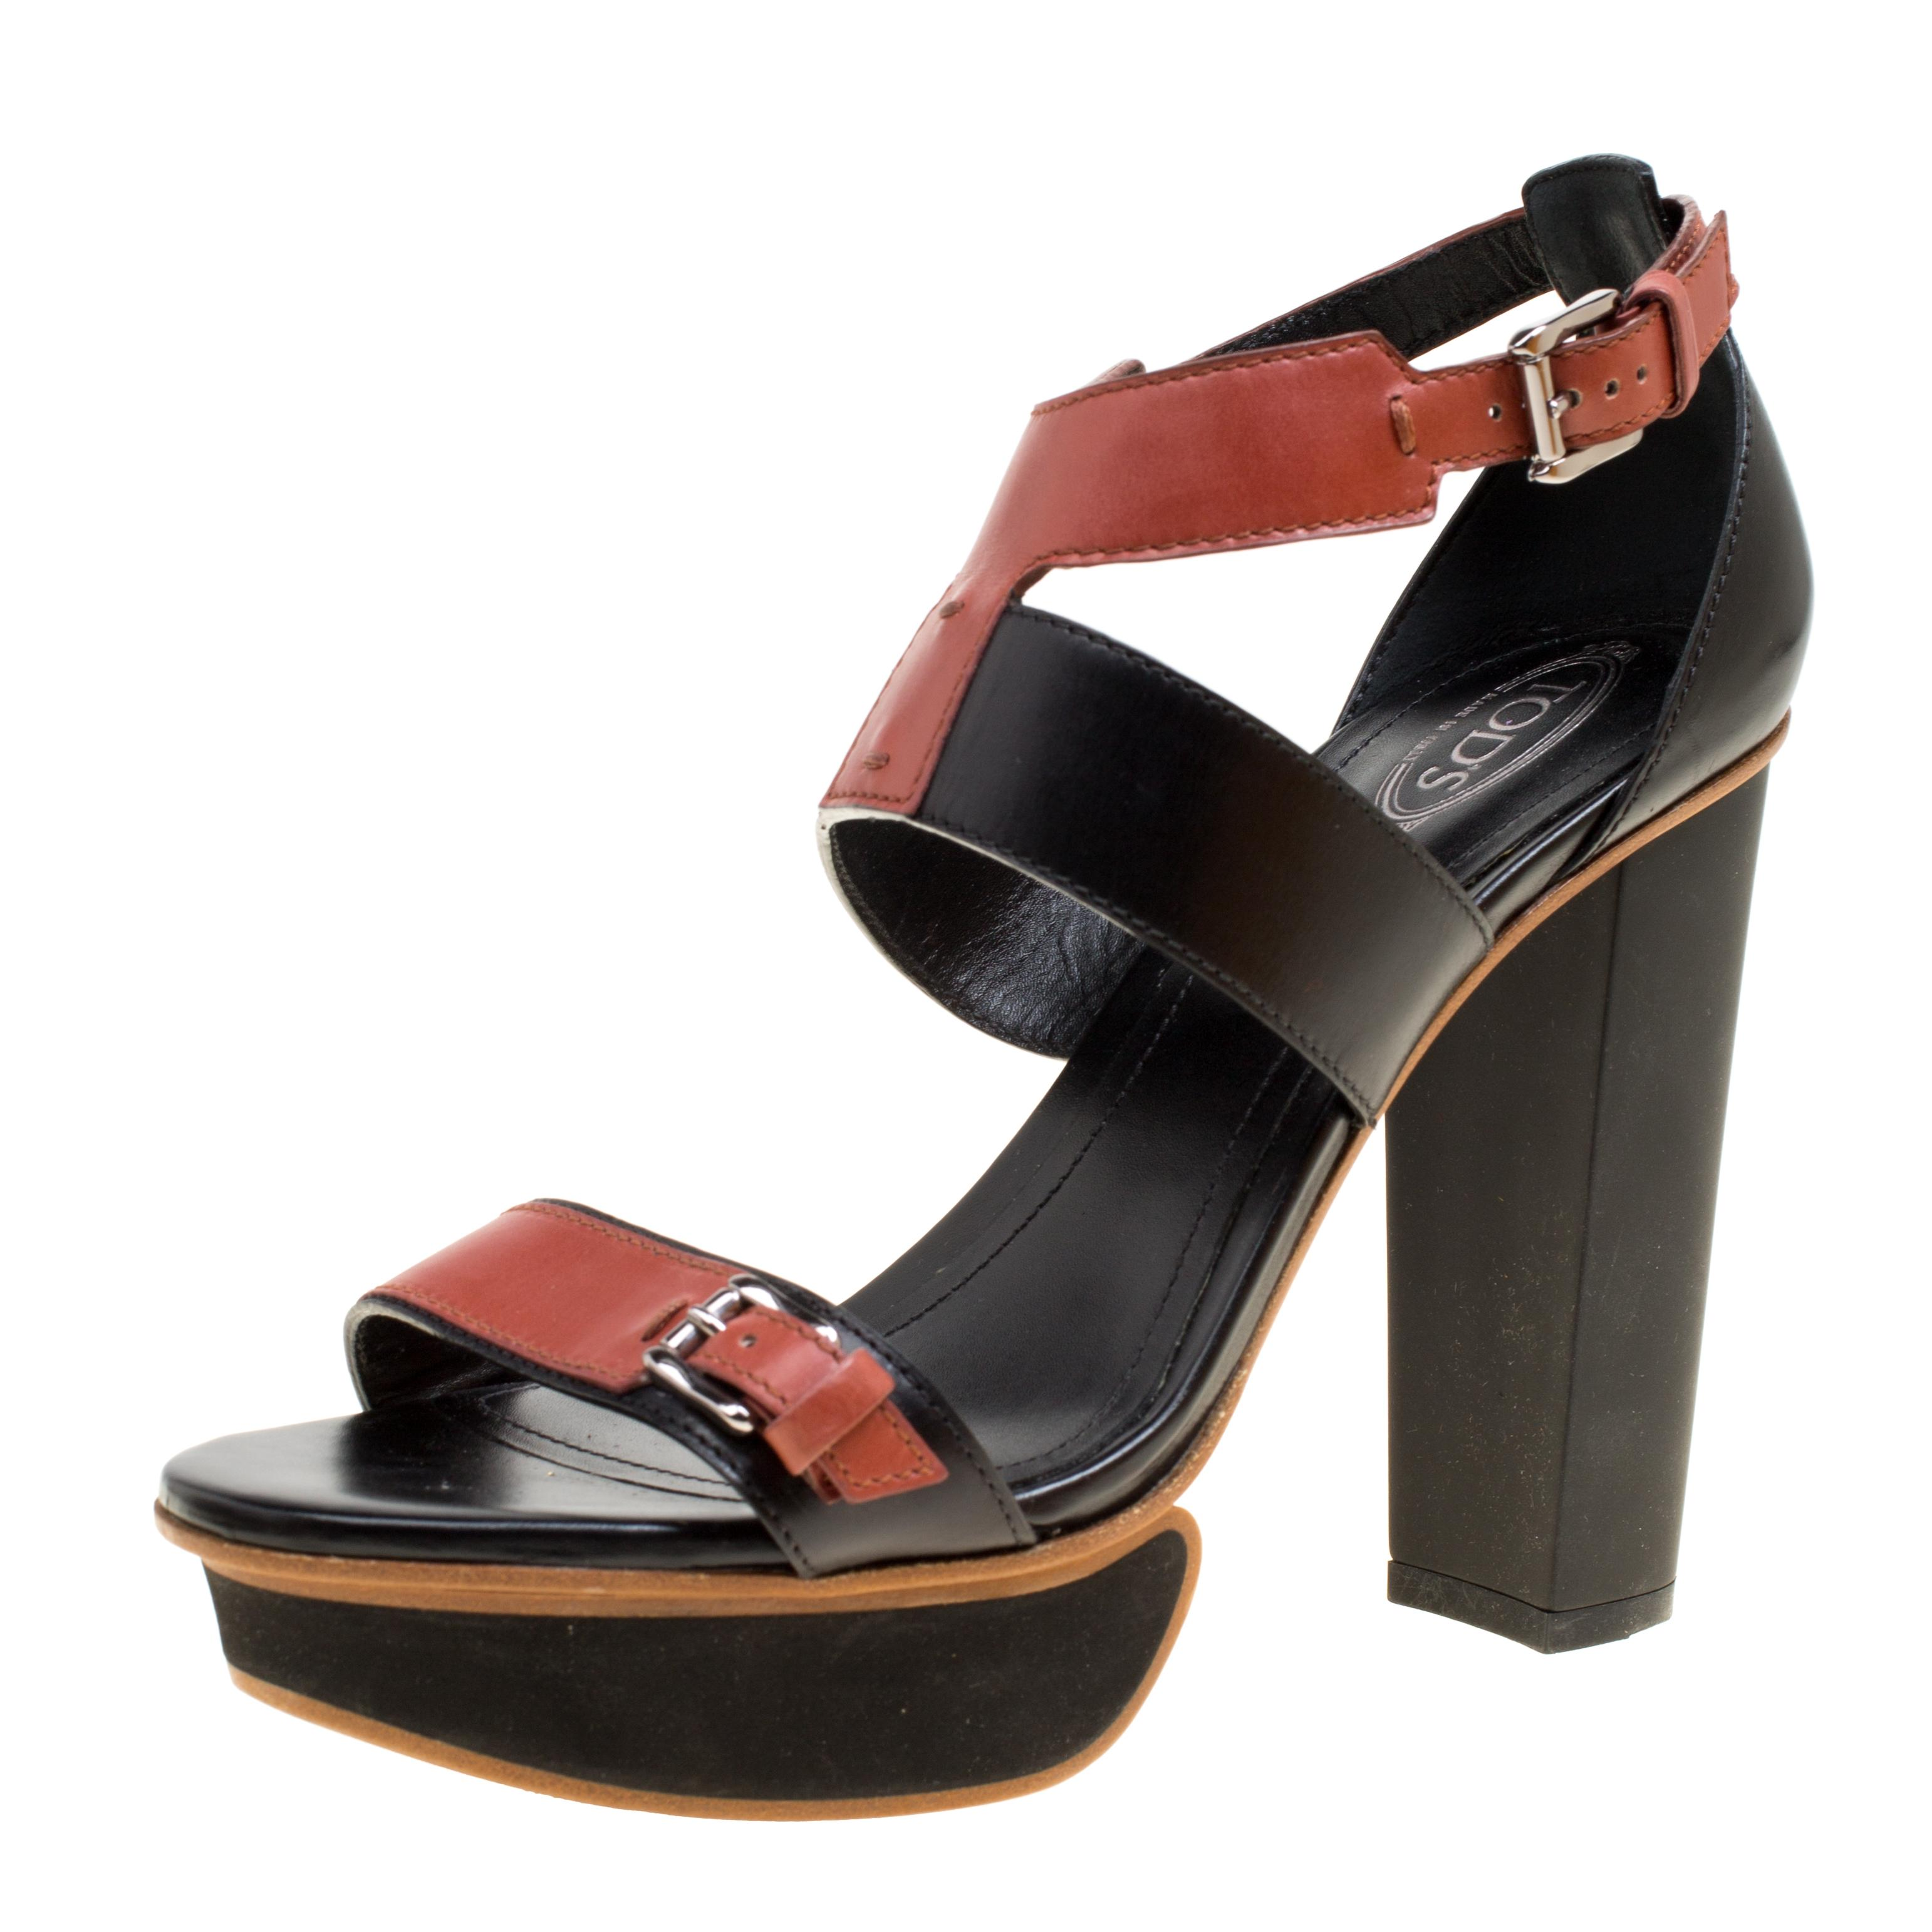 e81f92944991 Tod s Black And Brown Leather Ankle Strap Platform Sandals Size 38 ...